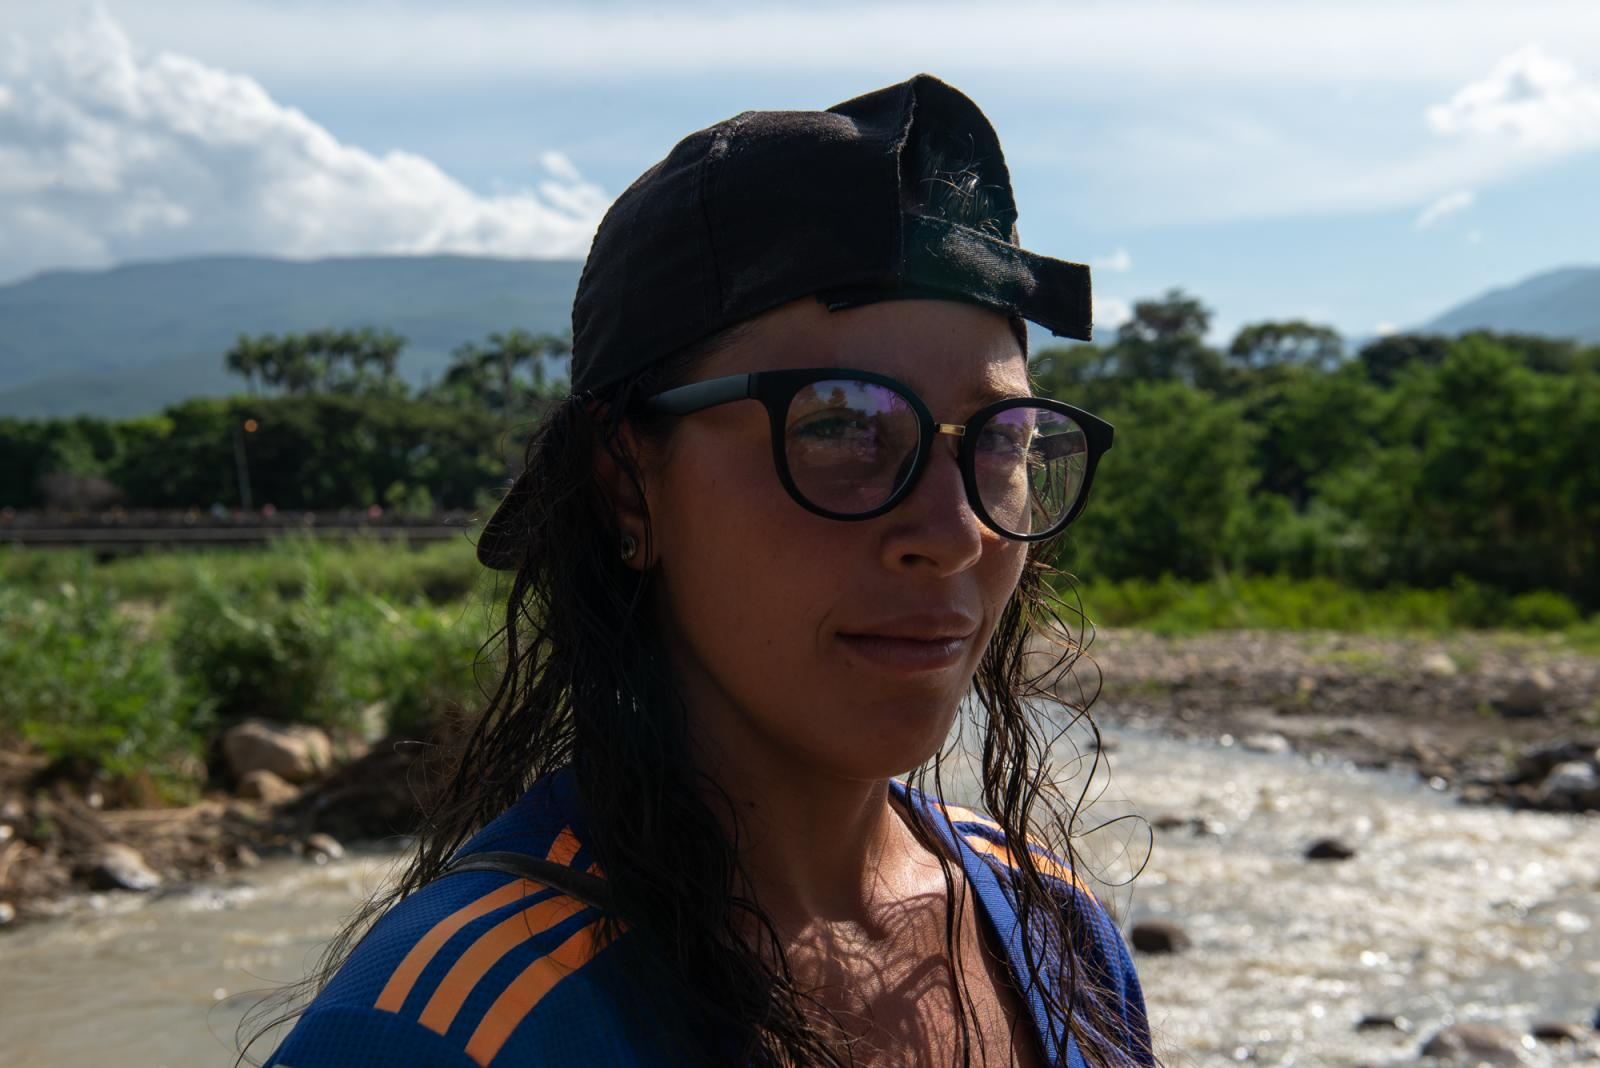 """Nelly is 22 years old and originally from Caracas, Venezuela. She migrated to Colombia a little over a year. Formal work is hard to find so she decided to work as a Garruchera transporting goods between the Venezuelan - Colombian border. """"Fight for your dreams and prove that you can,"""" Nelly says. """"The female gender can, and we can show that we're warriors."""" La Parada, Colombia - October 6, 2019."""